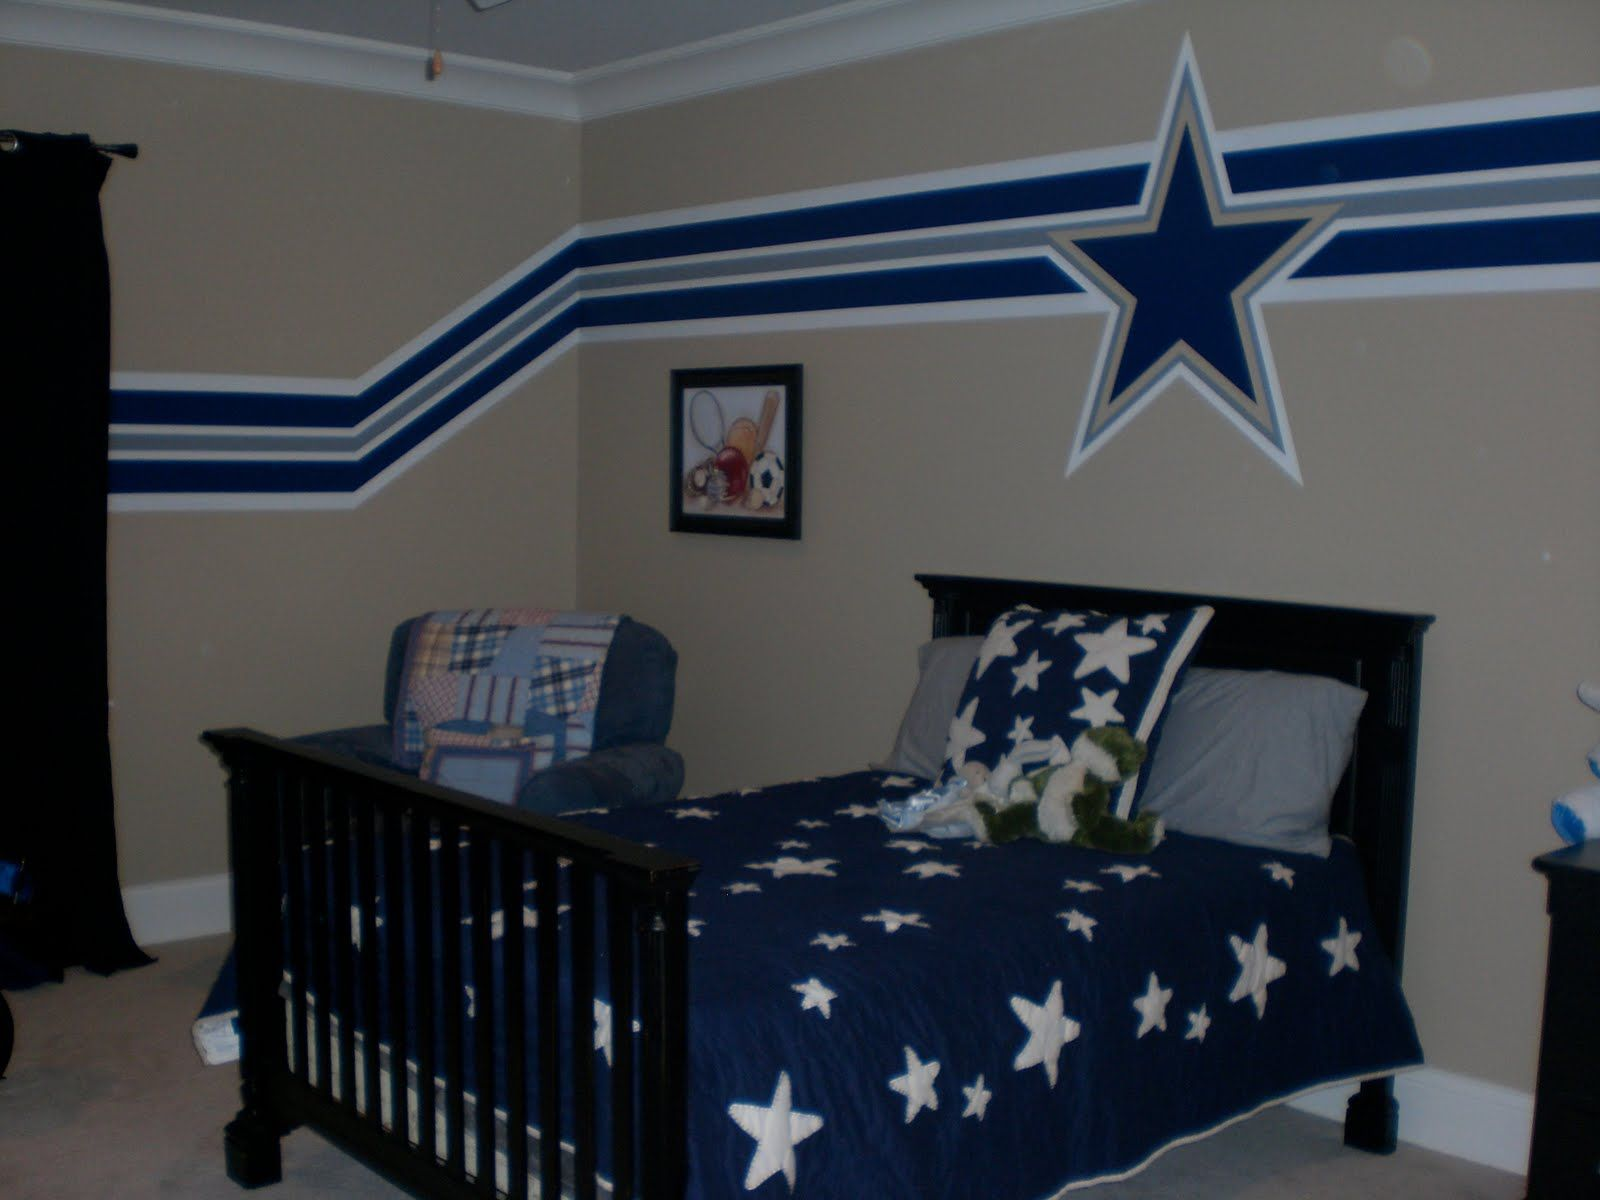 Bedroom wall paint ideas for boys - 3 Paint Ideas For Boys Room Sports With Dallas Cowboys Edition